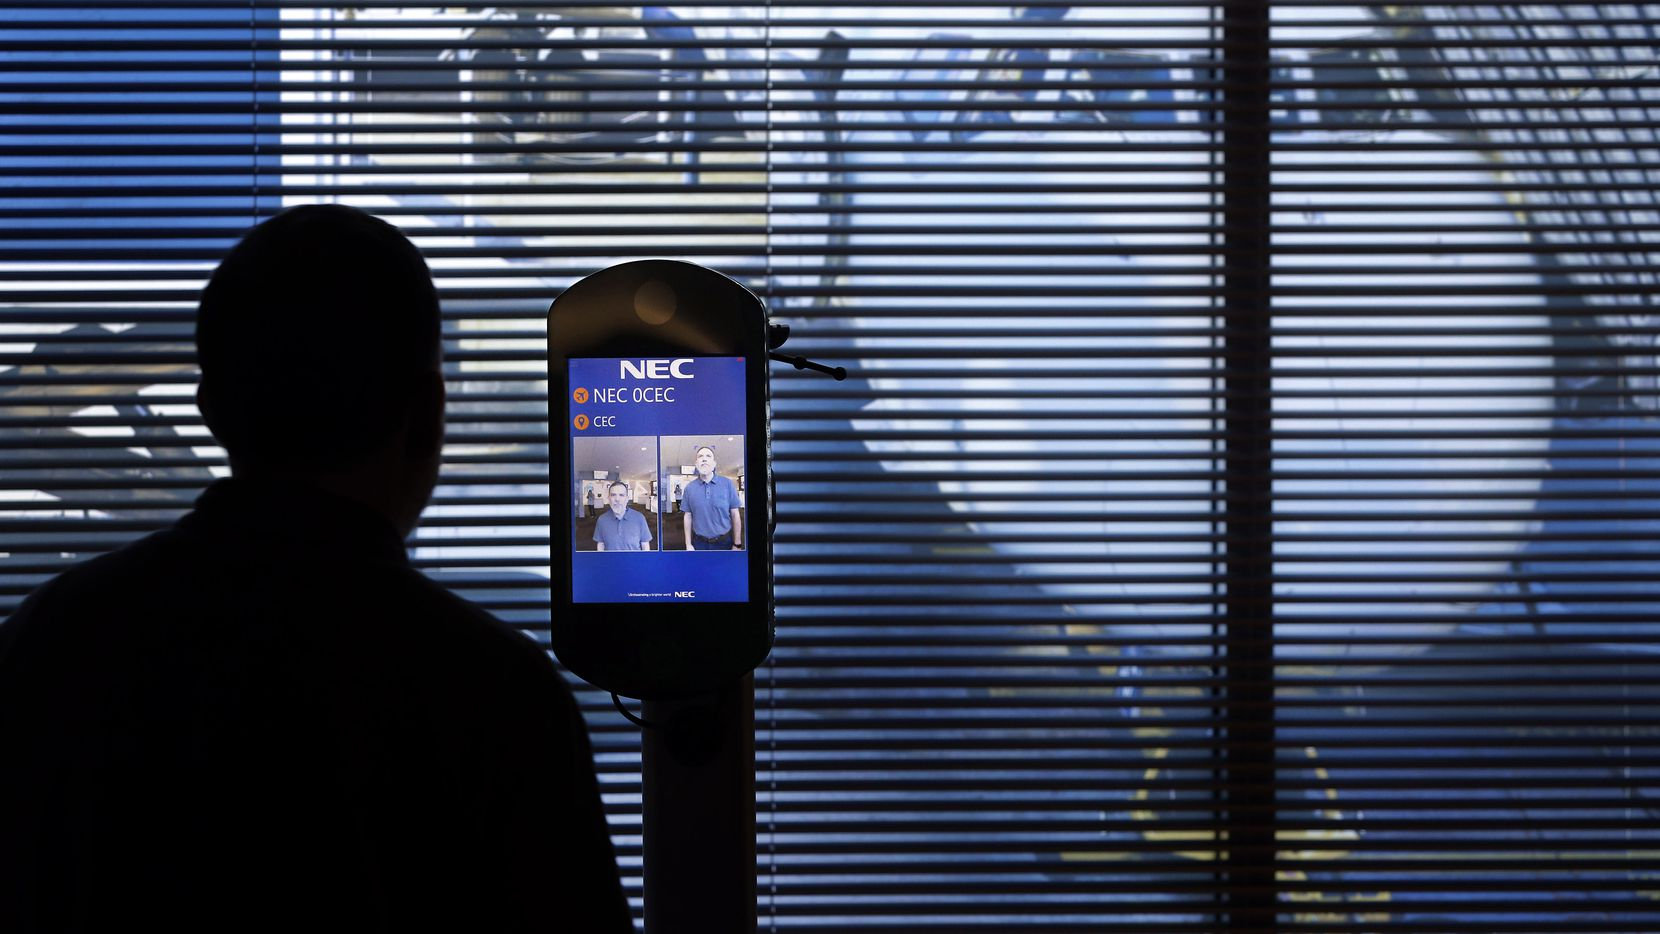 U.S. officials might soon require all travelers to be photographed as they enter or leave the country as part of implementing facial recognition technology at airports.